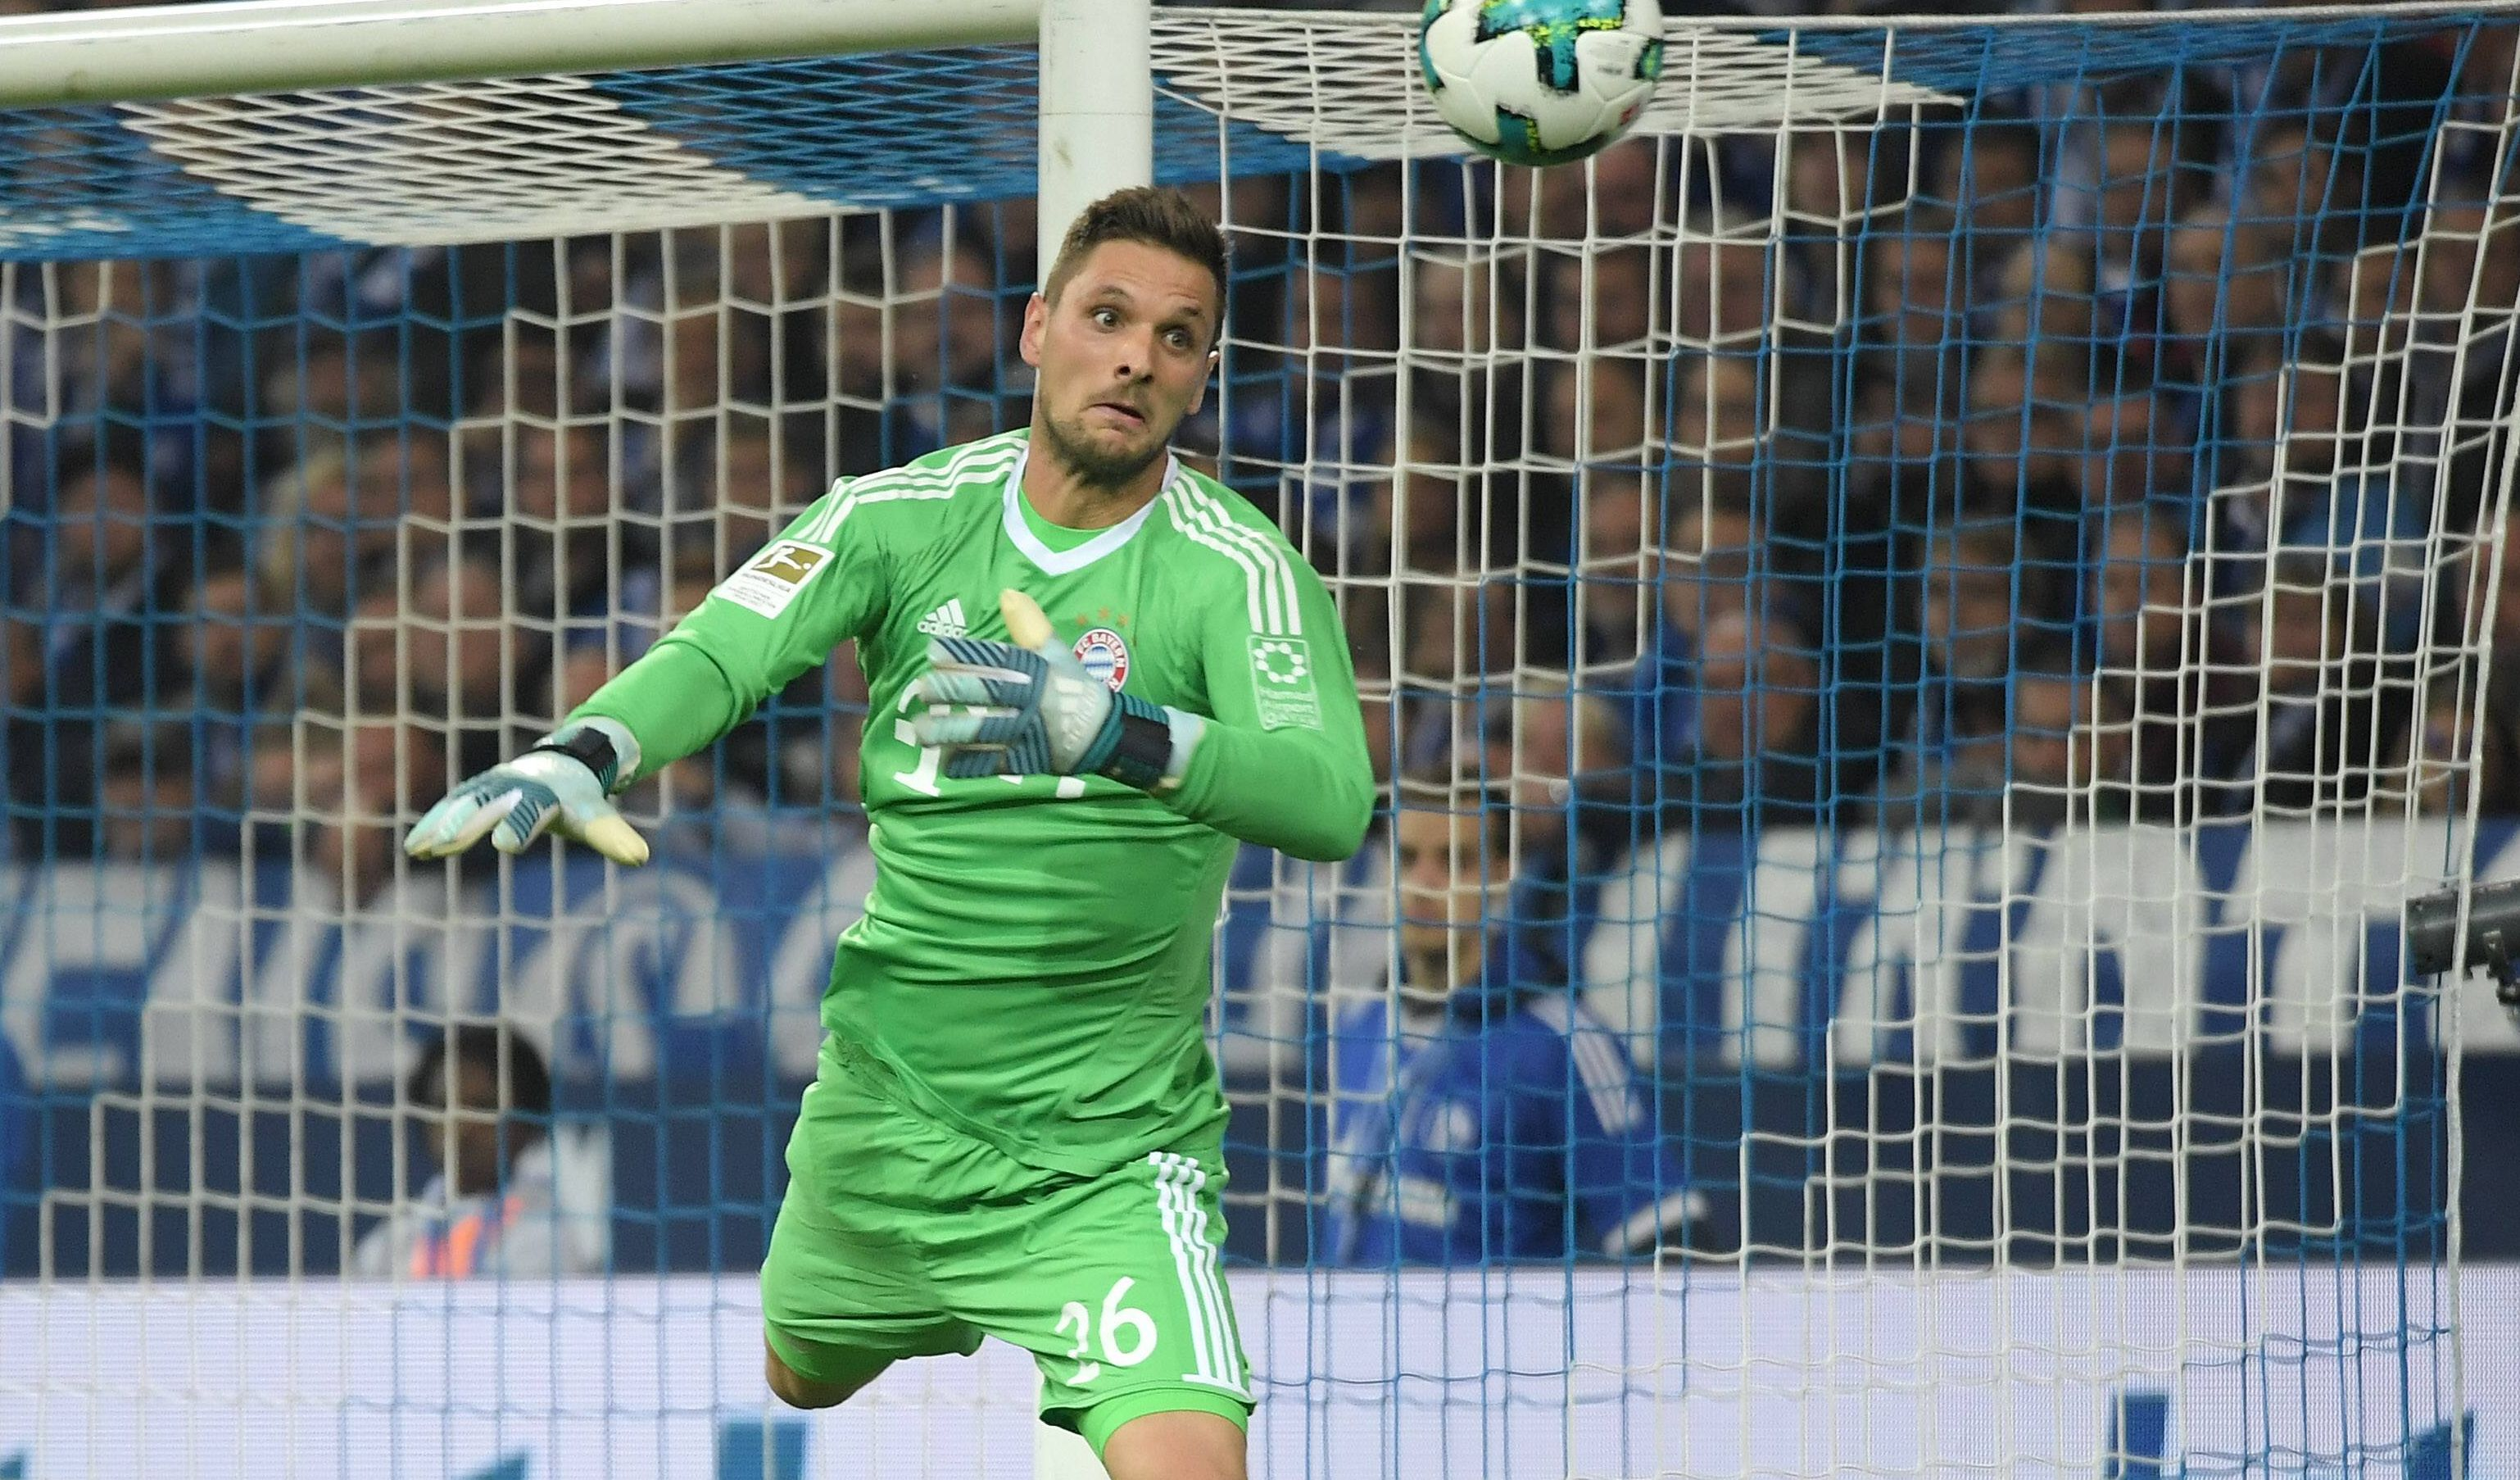 Football - Ligue des champions - Sven Ulreich, le maillon faible du Bayern ?